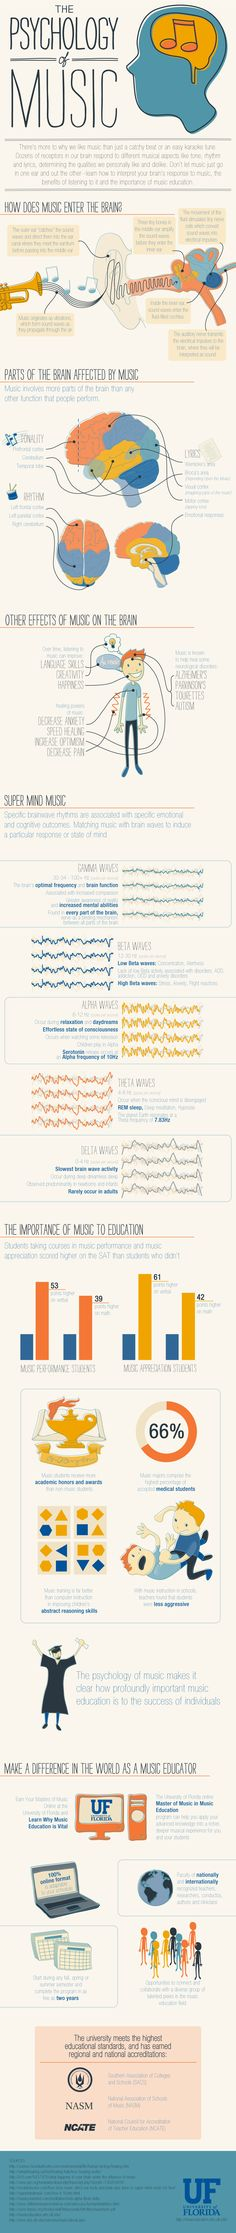 The Psychology of Music from the University of Florida. #infographic #poster #music #education #learning #teaching #brain #classroom